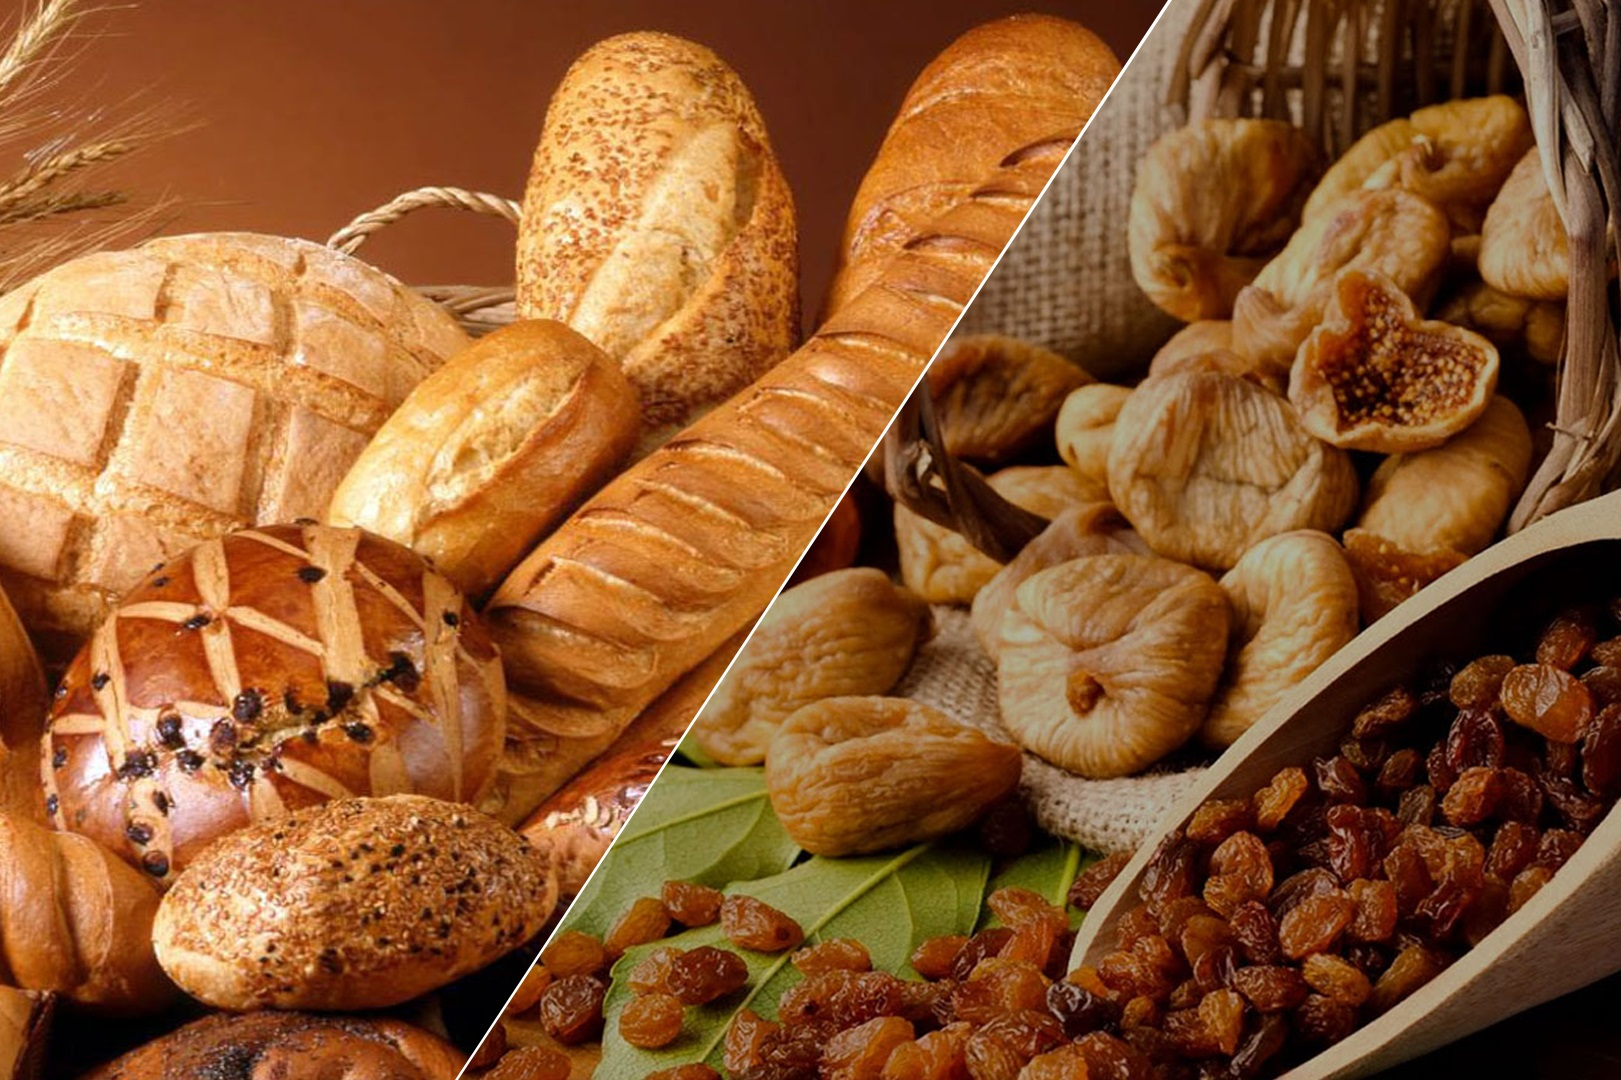 Nuts, Dry Fruit, Breads